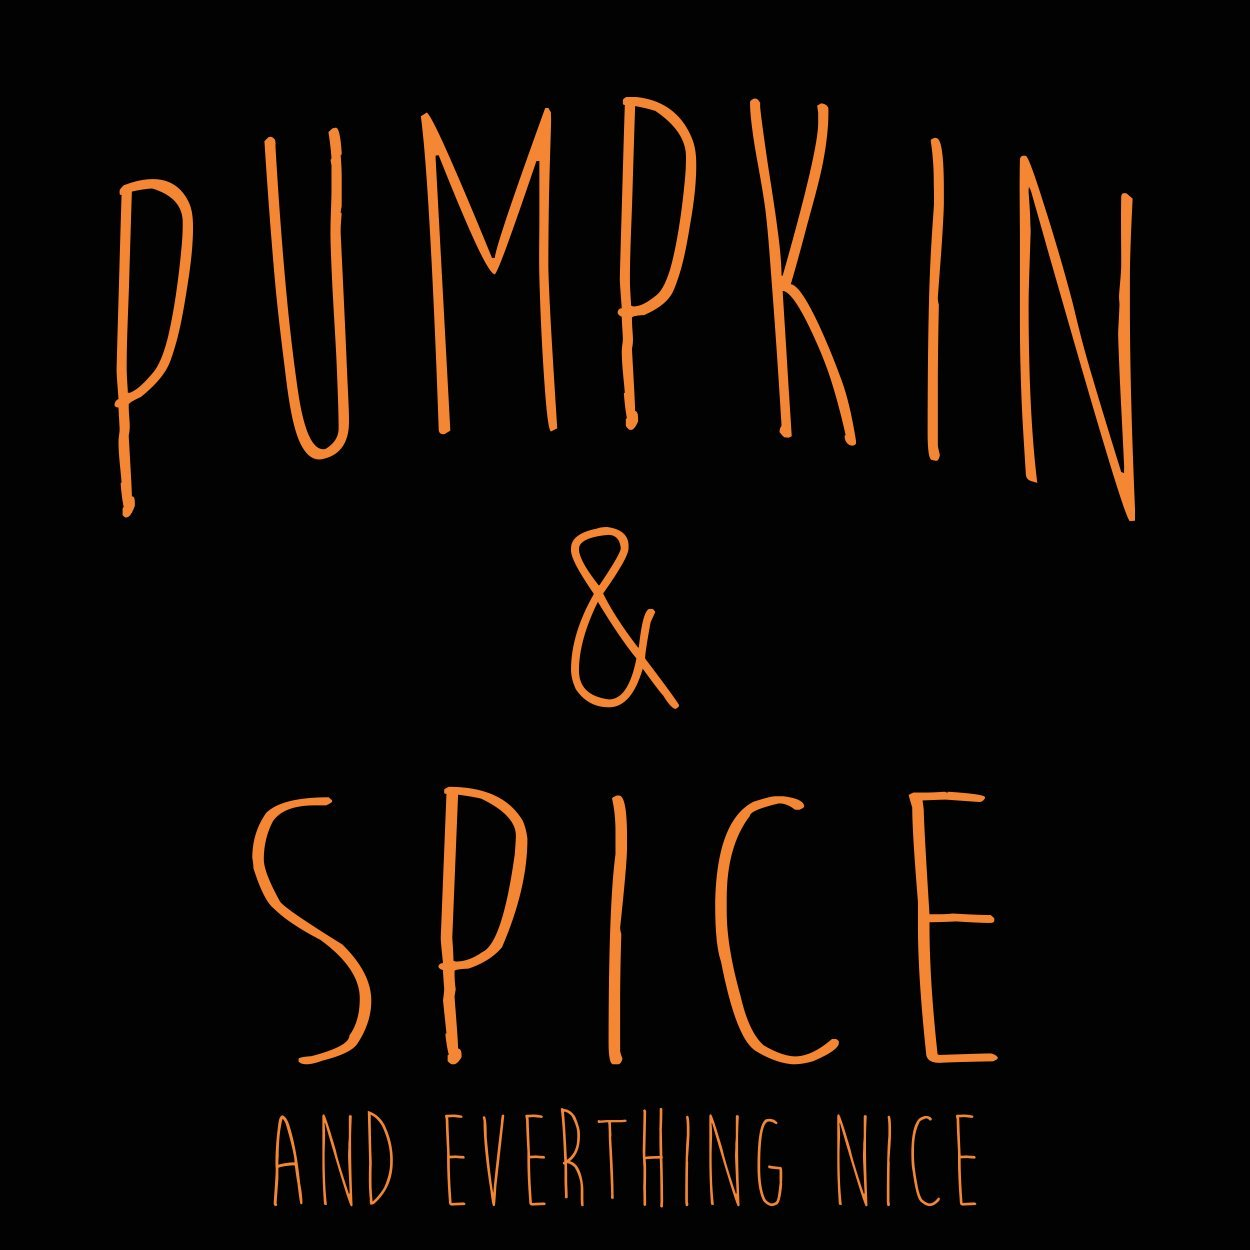 Pumpkin And Spice - DonkeyTees